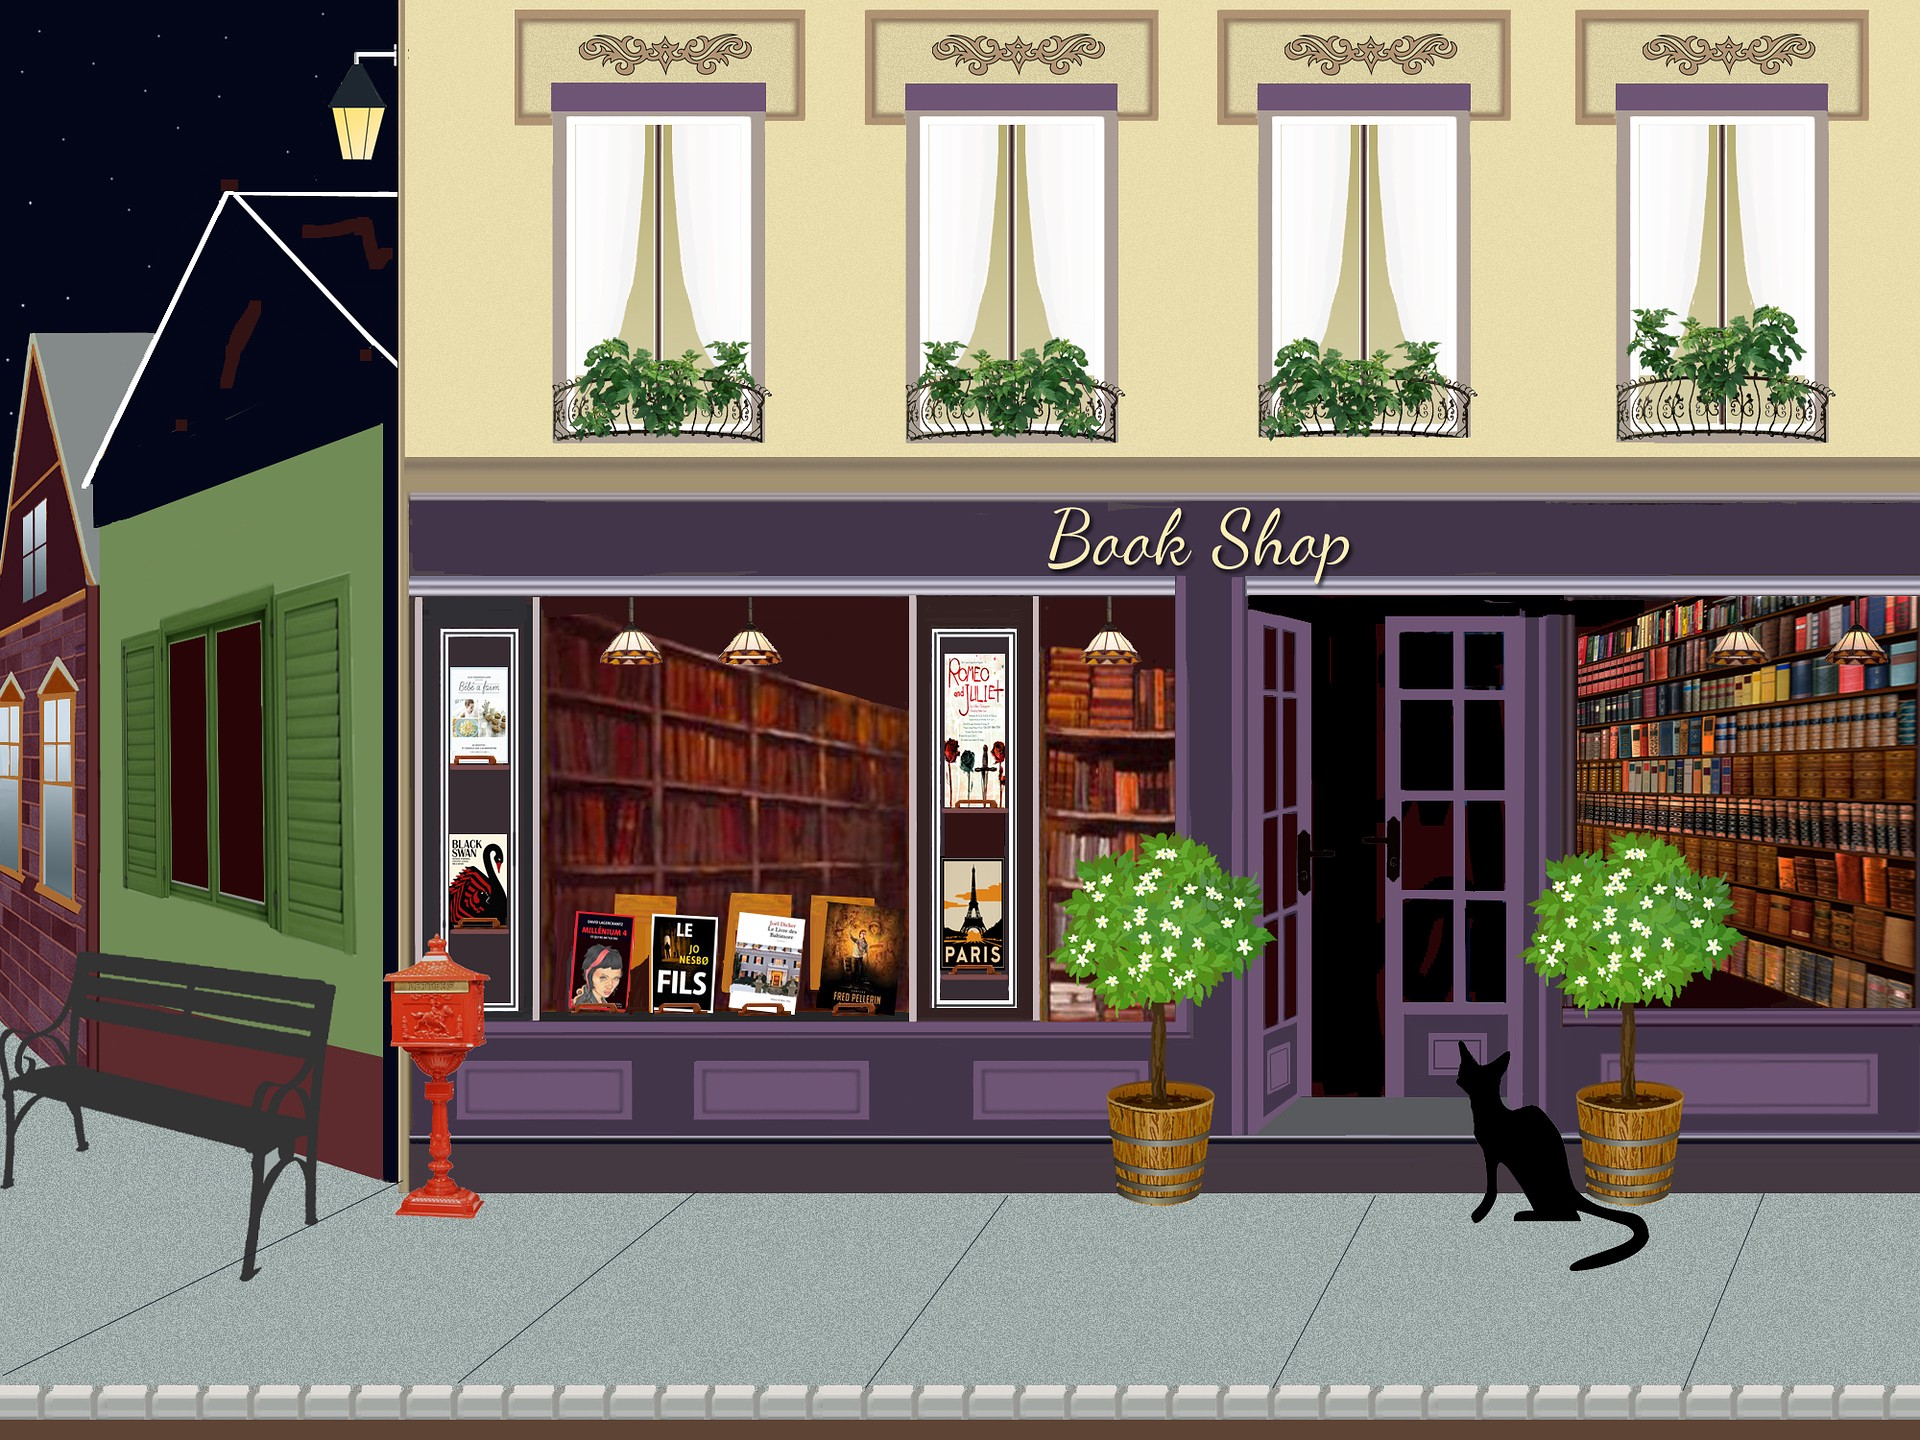 Artist's color drawing of a book shop storefront in France.